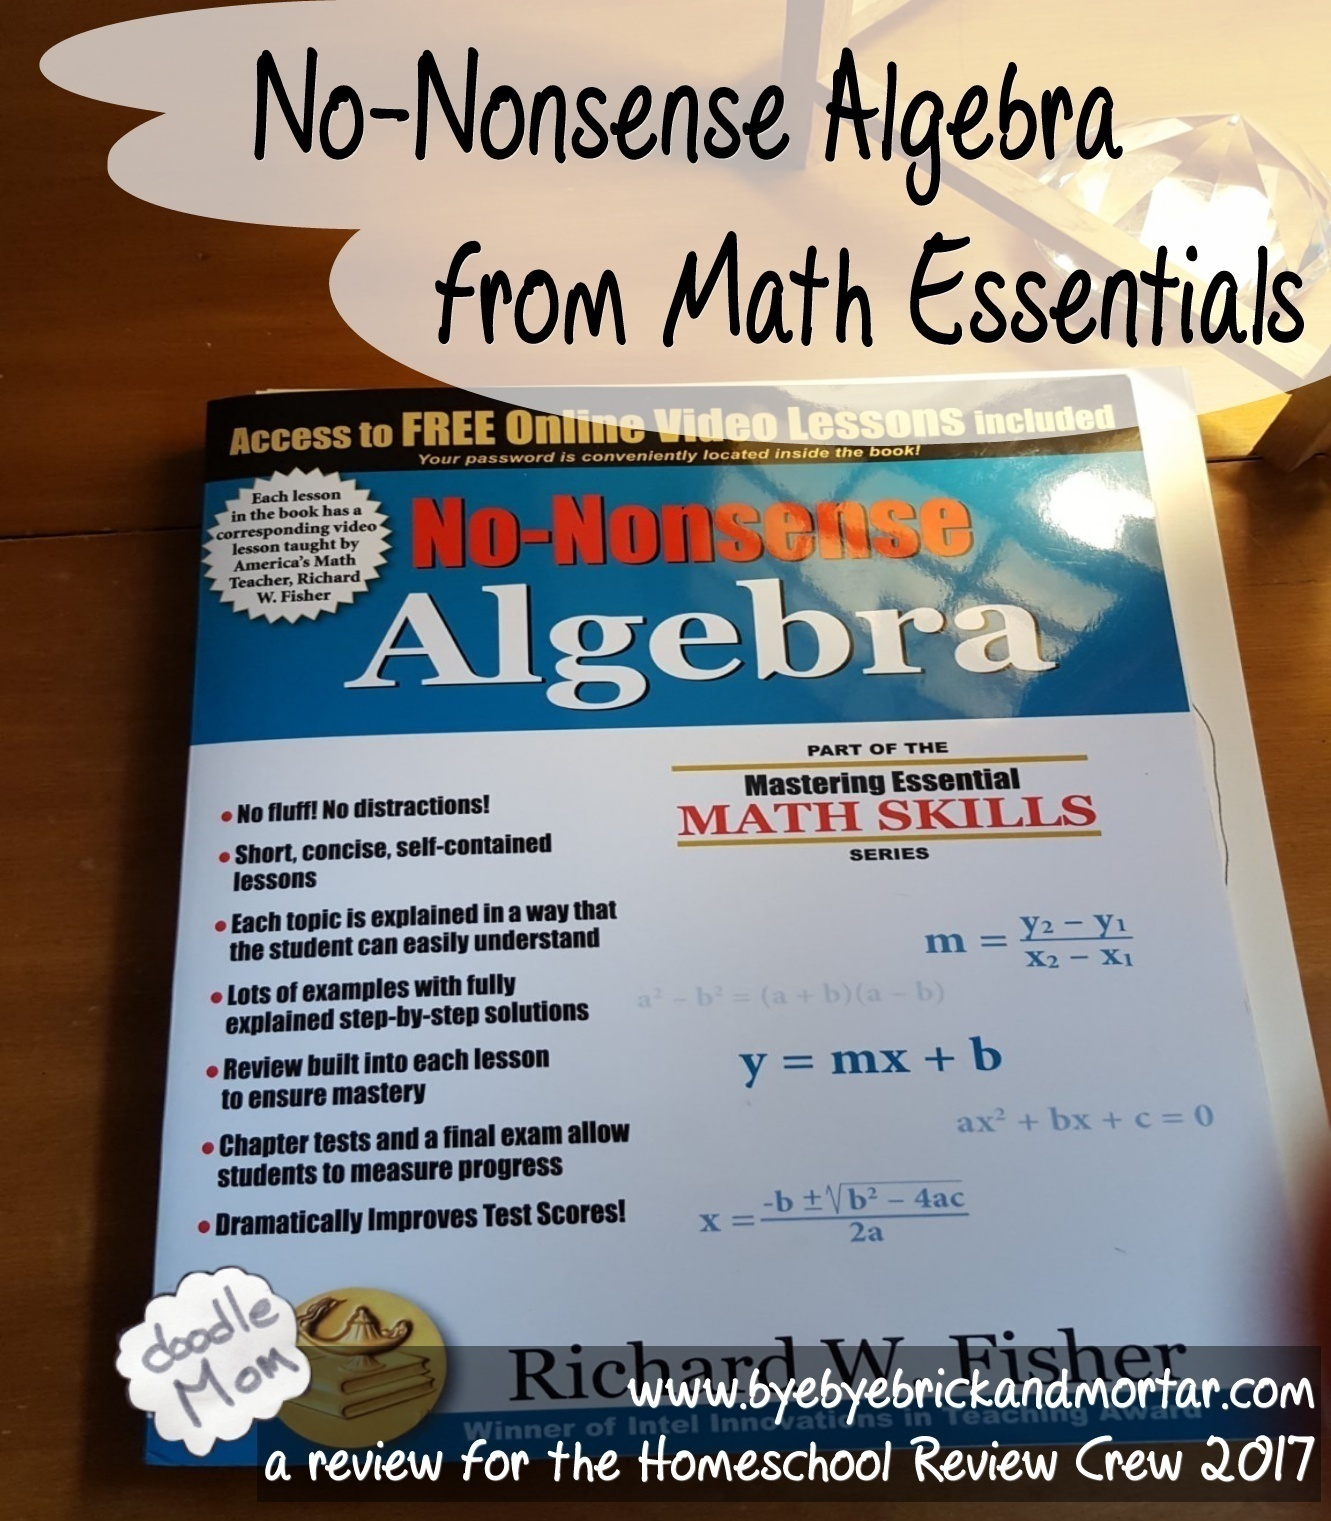 No-Nonsense Algebra from Math Essentials | DoodleMom